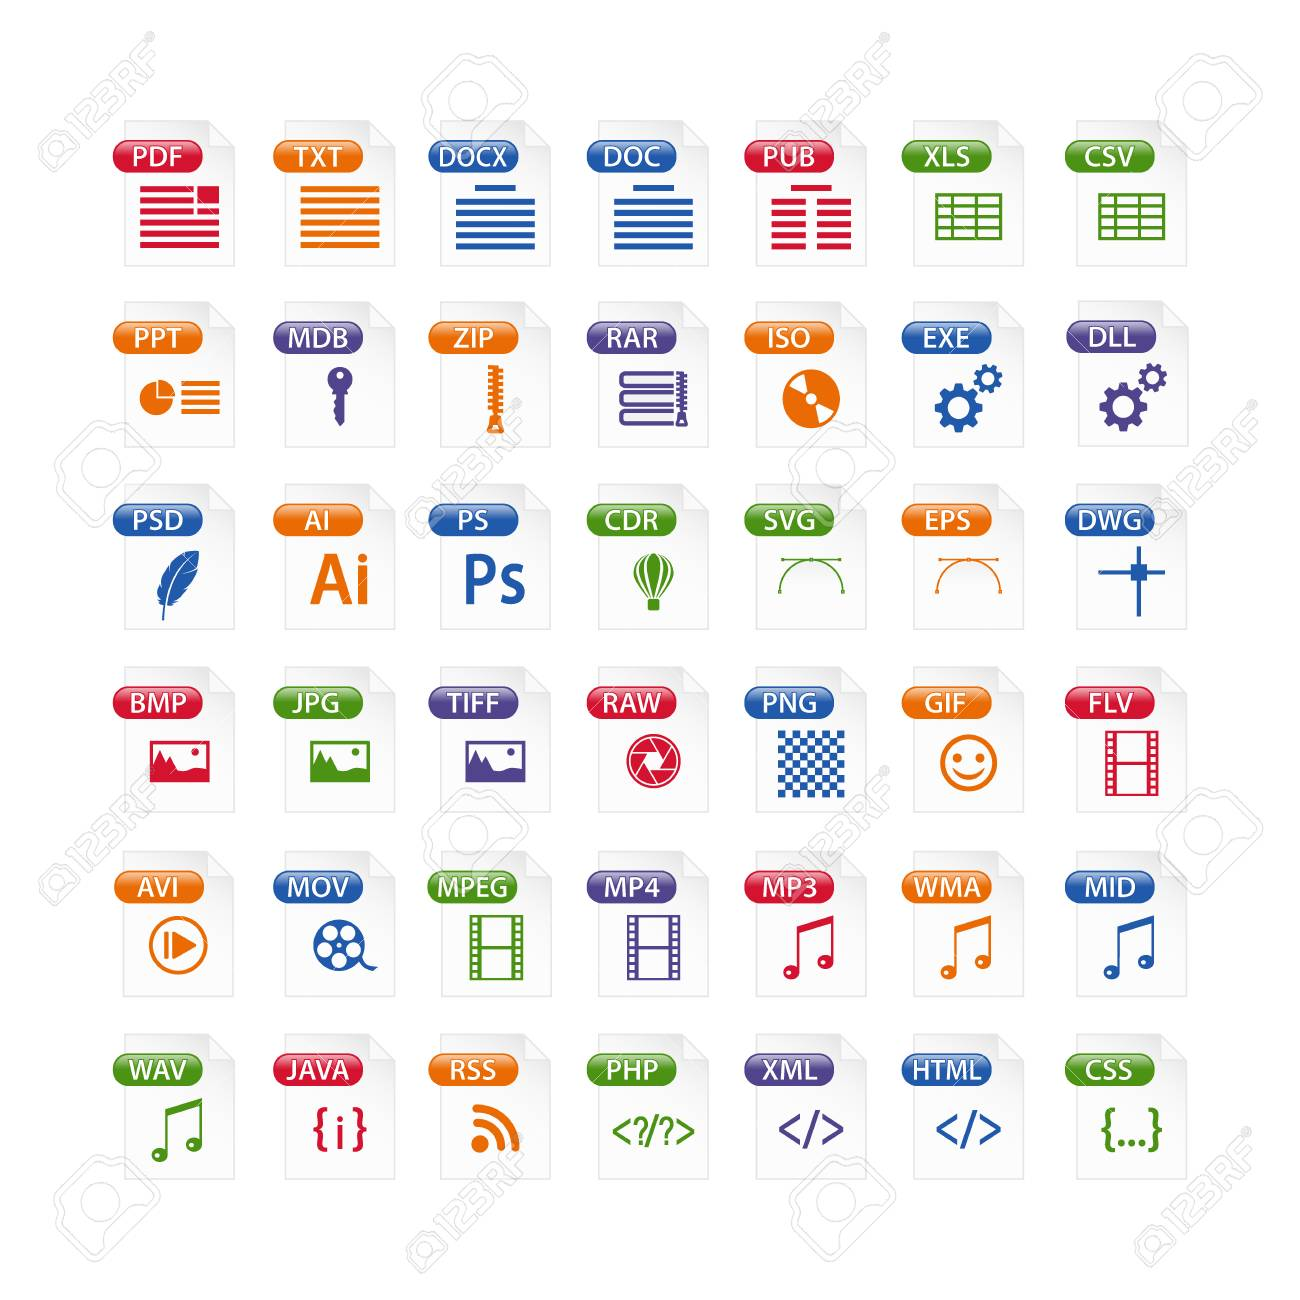 colorful set of file type icons. file format icon set in color, files symbols buttons - 97539267